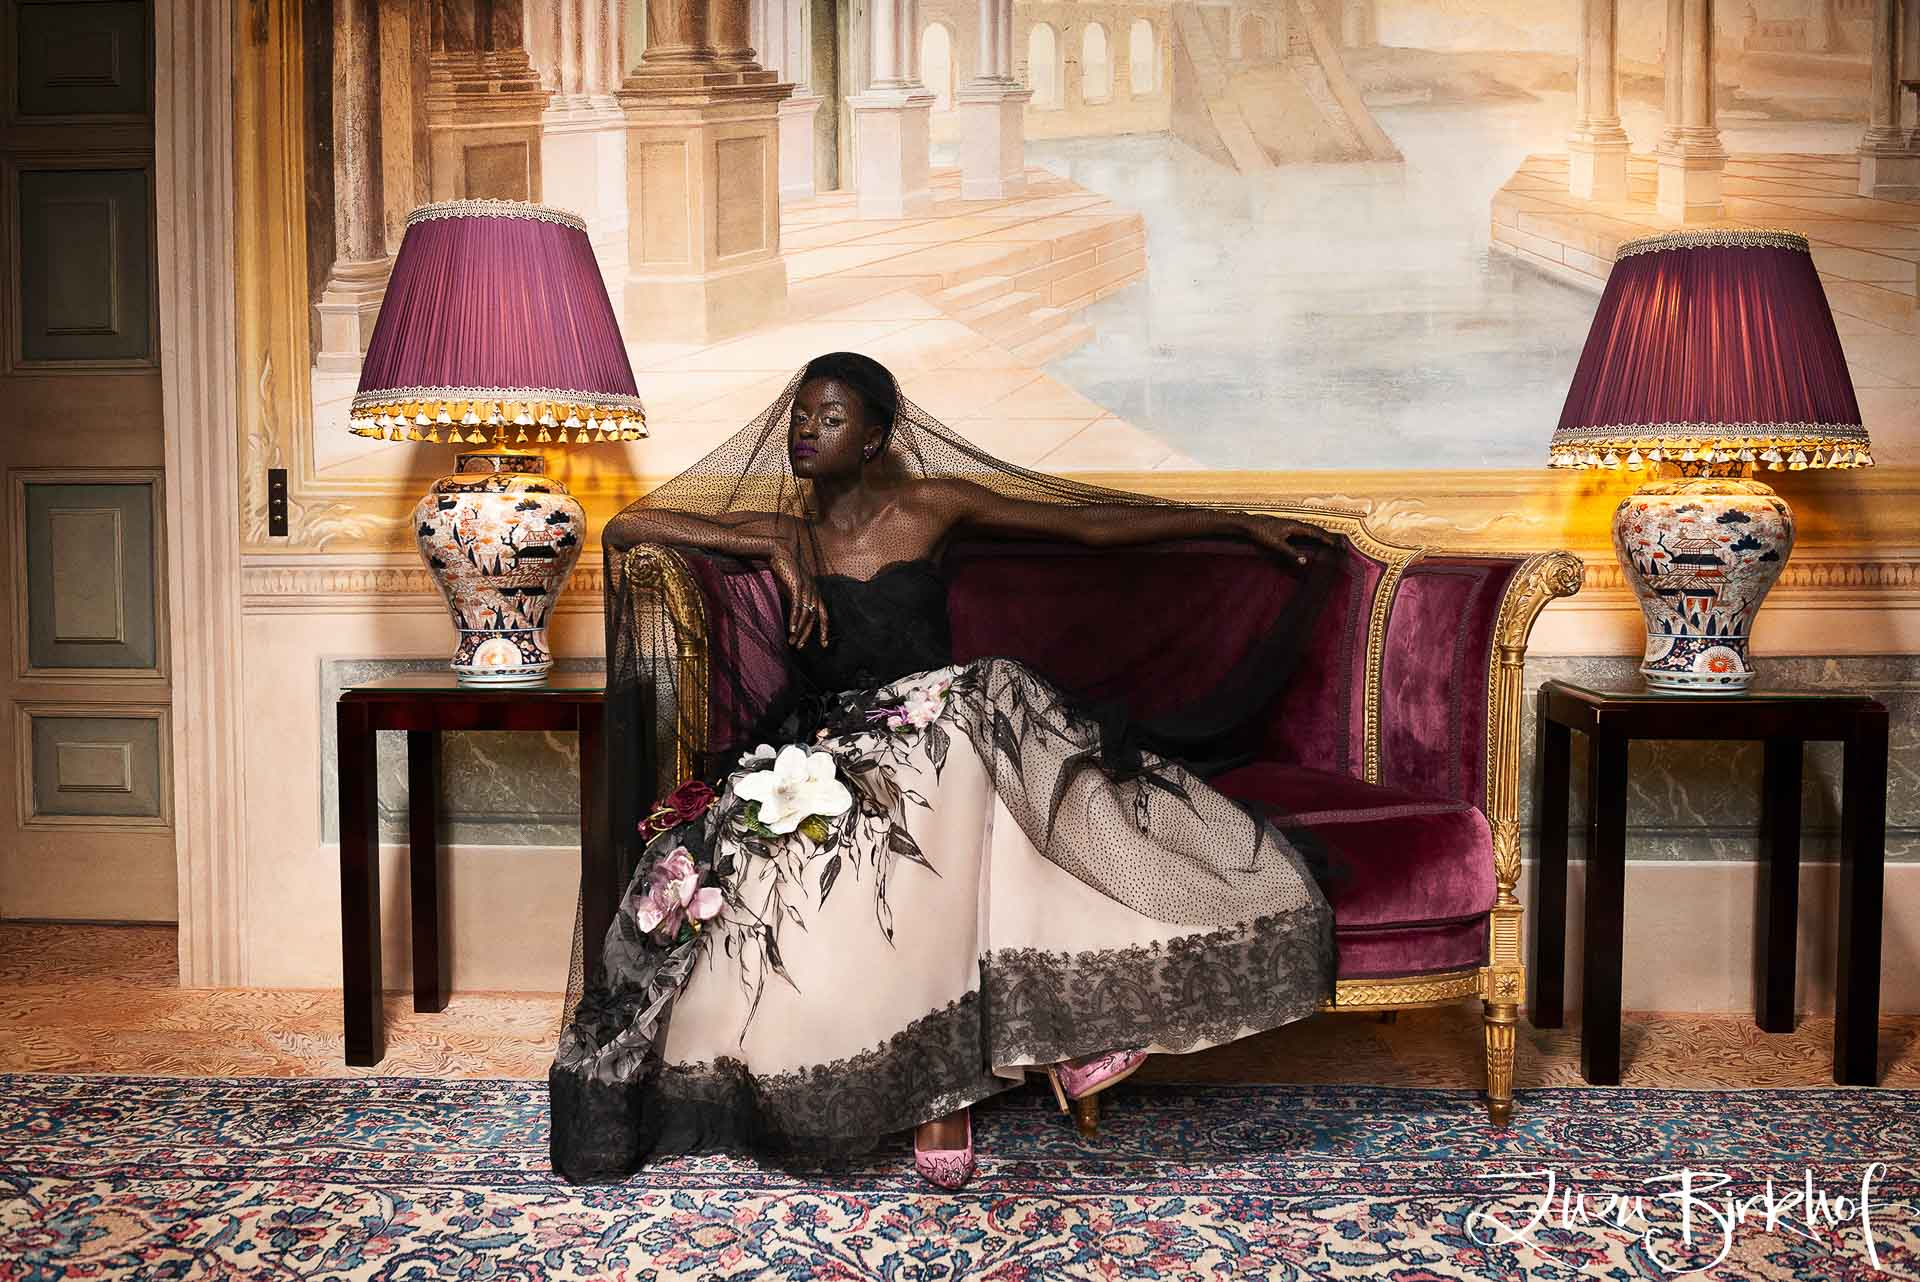 Villa Balbiano luxury property lake Como Milan Italy fashion glamorous model portrait living room antique furniture heritage collection couture dress